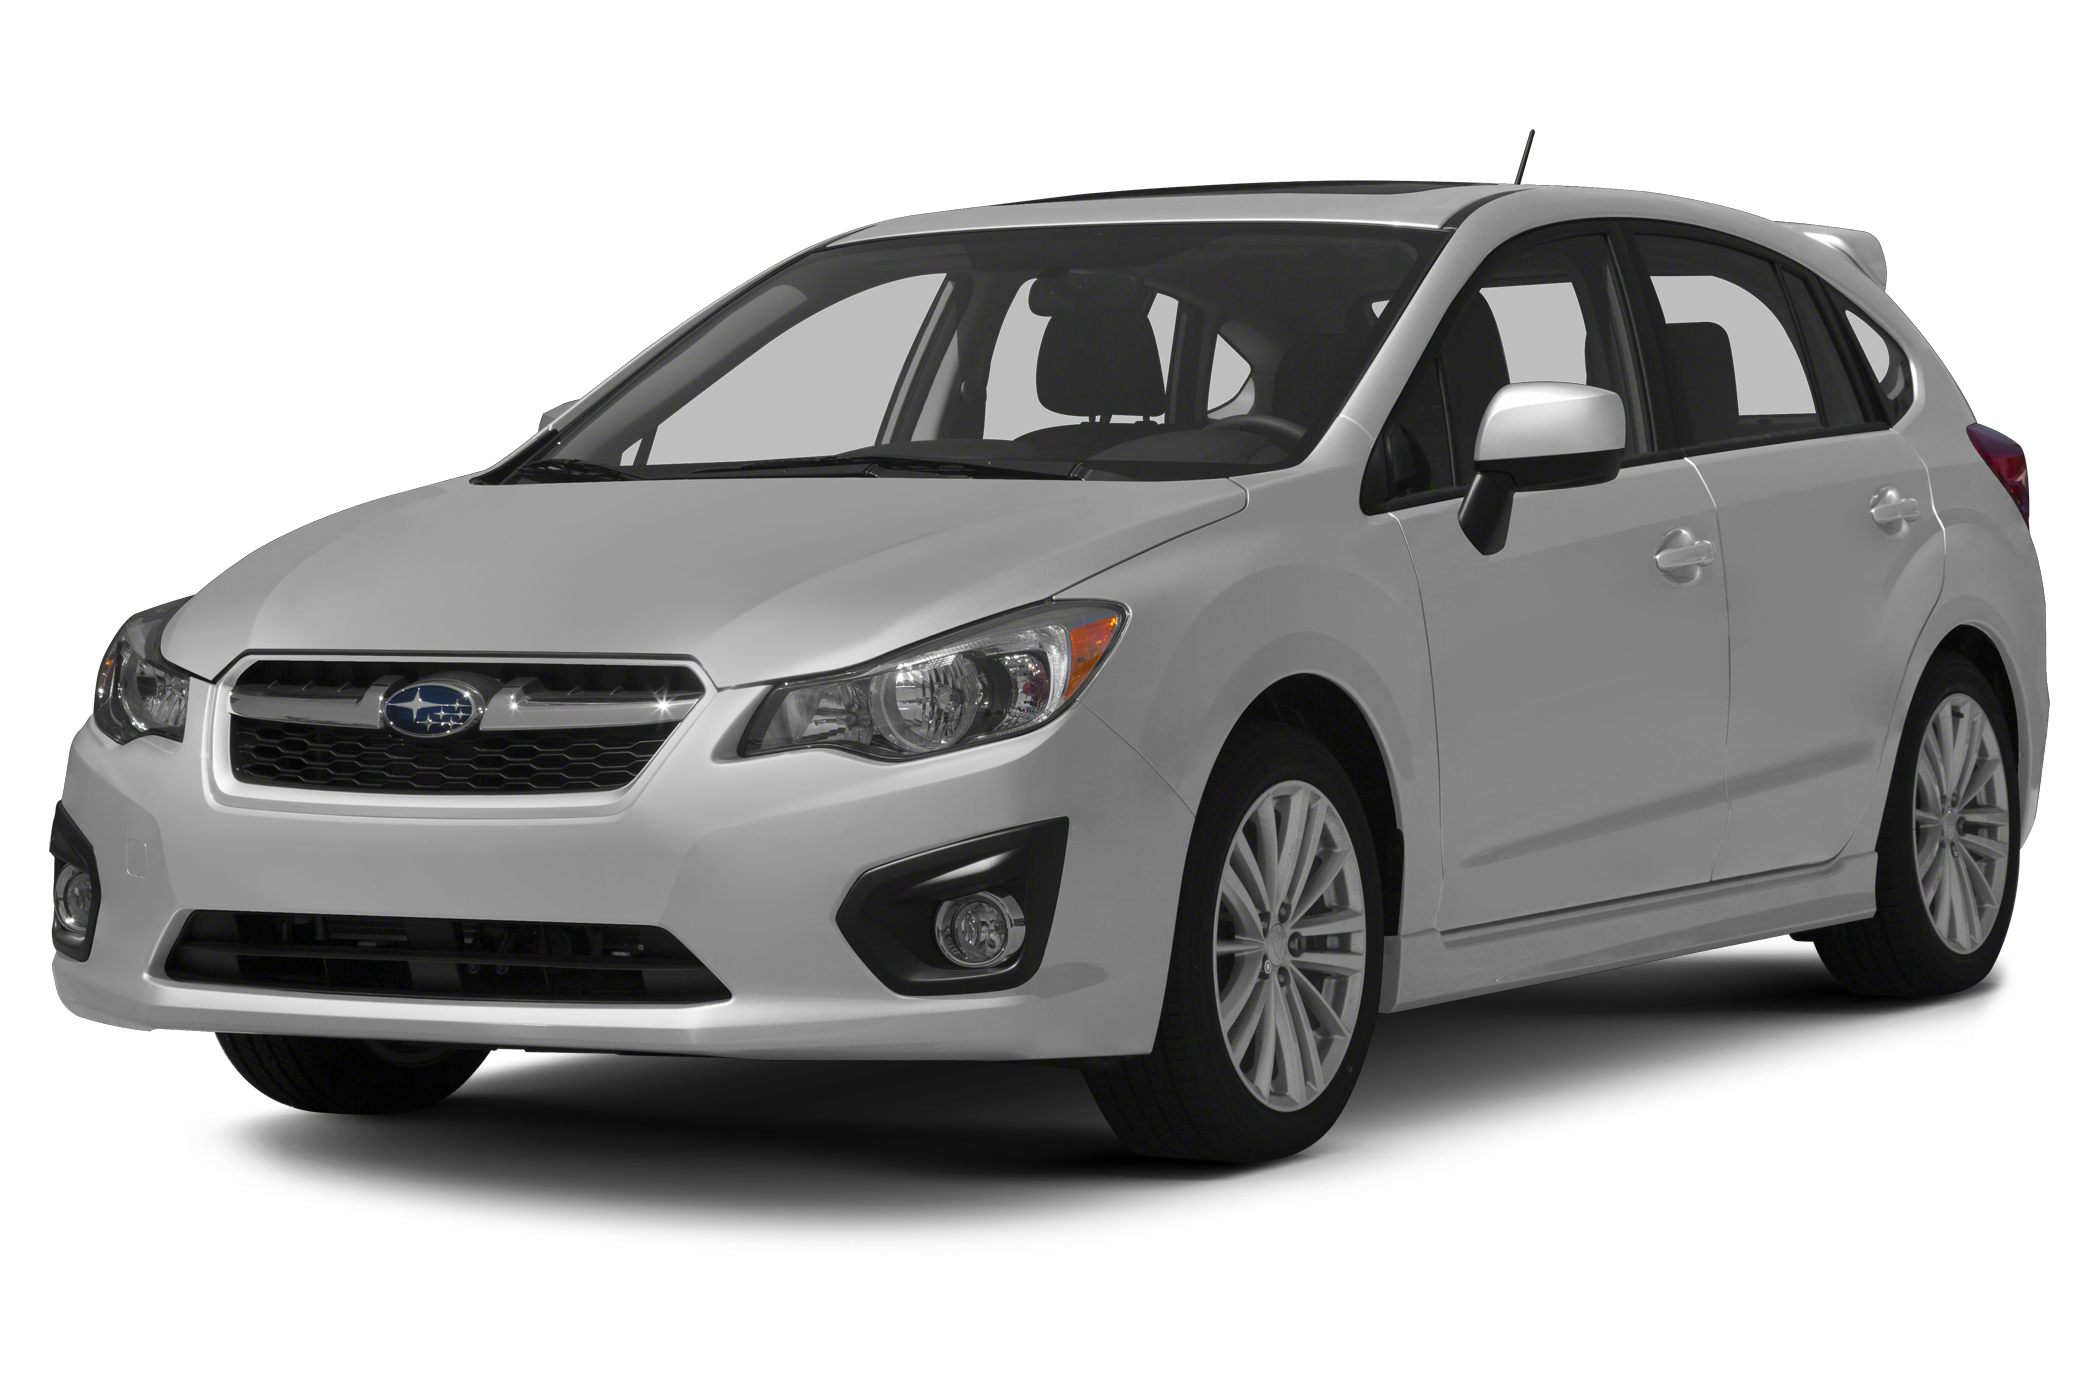 2012 Subaru Impreza 20i Sport Premium WE OFFER FREE LIFETIME INSPECTION Miles 110269Color Blac